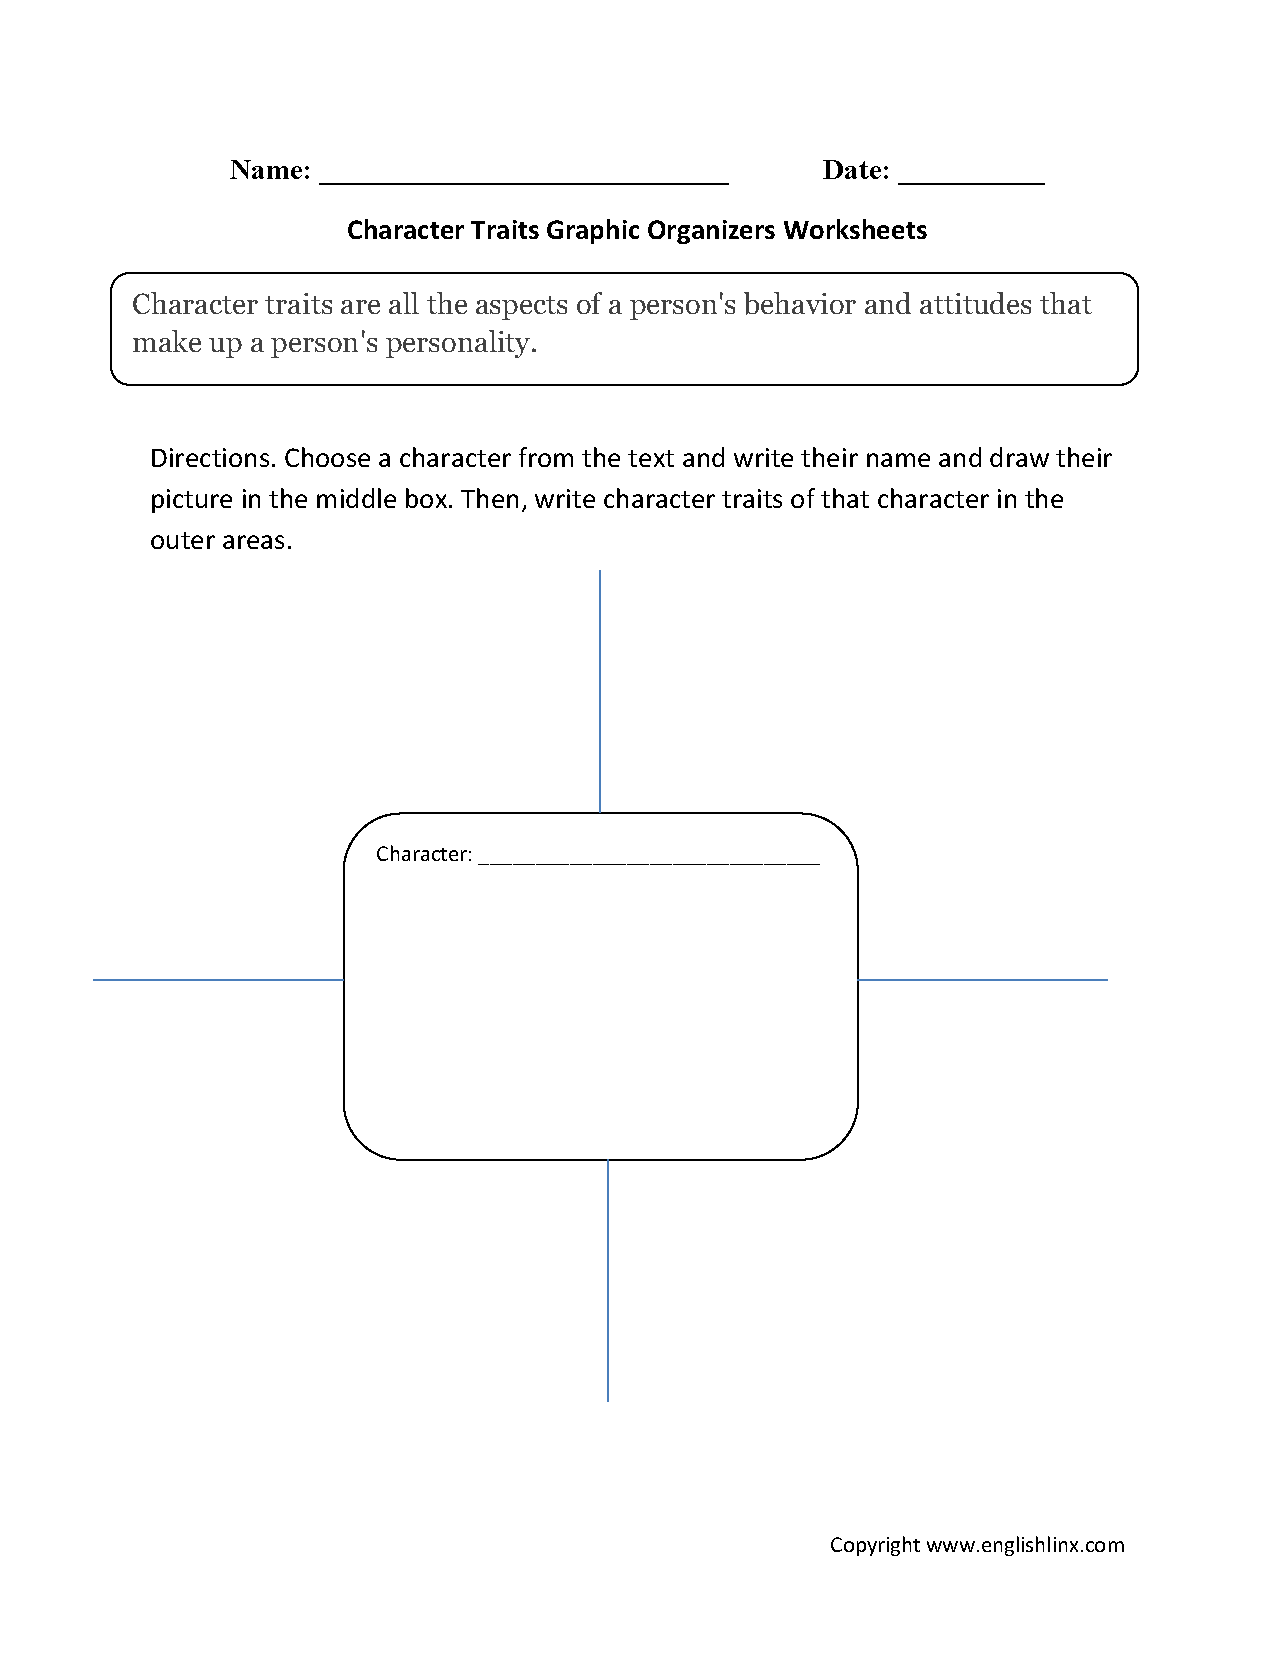 Characterysis Graphic Organizer 4th Grade